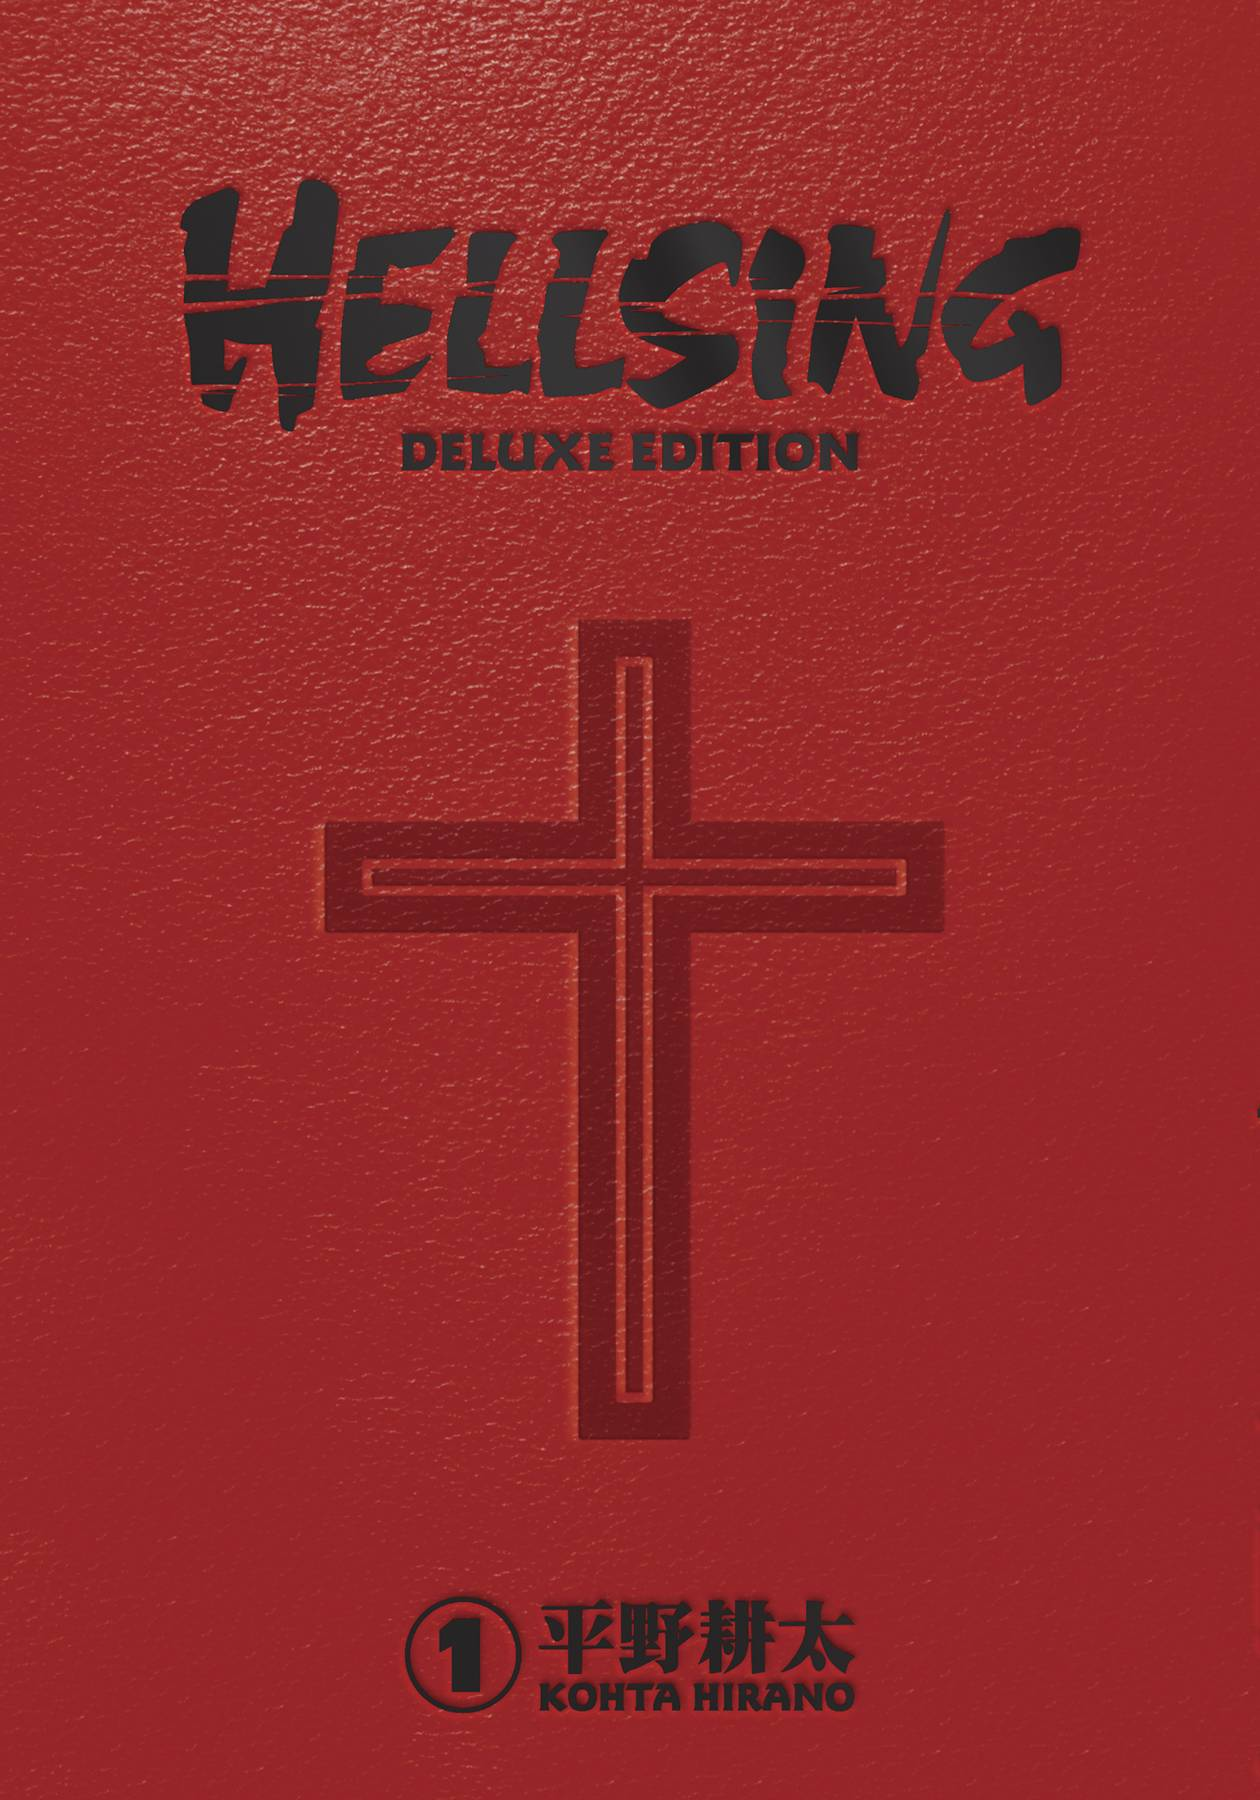 HELLSING DELUXE EDITION HC VOL 01 (MAR200385) (MR)